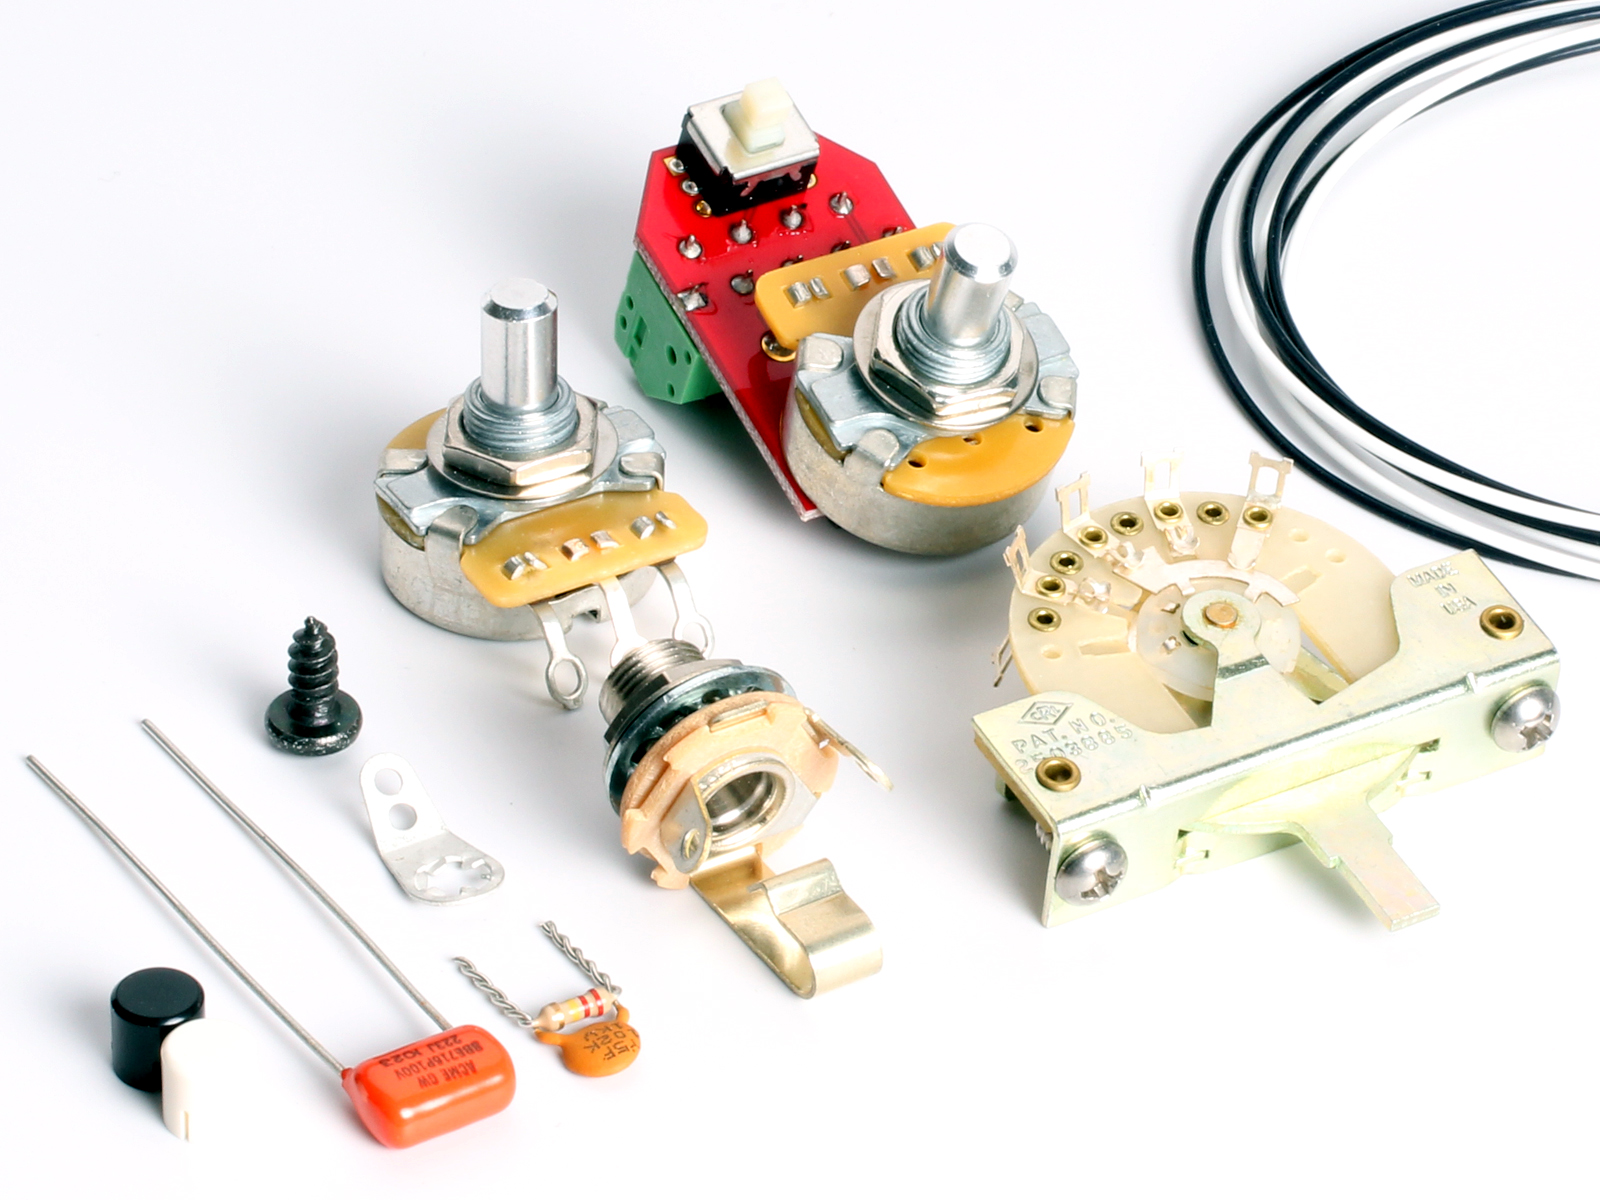 Best Telecaster Wiring Kit Electrical Diagrams Fender Broadcaster Diagram Toneshapers Hh4 Green Machine Vintage Kits